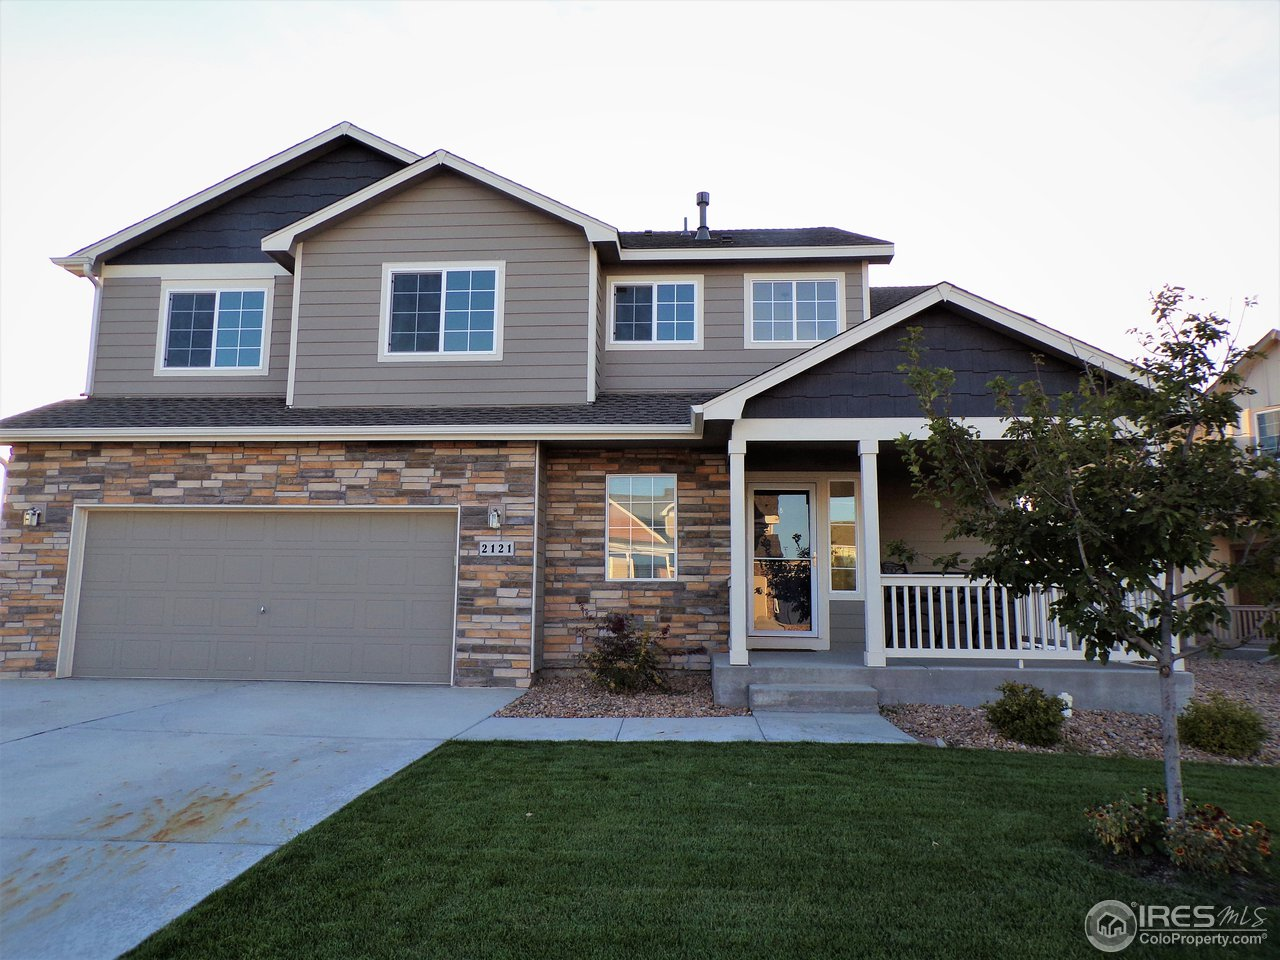 This is a beautiful 2 story home built in 2016 that offers 3 bedrooms, 3 bathrooms, a beautiful and upgraded kitchen, and a fully fenced in yard with professional landscaping. All stainless steel appliances included. Easy access to HWY 34, I-25 and shopping centers.